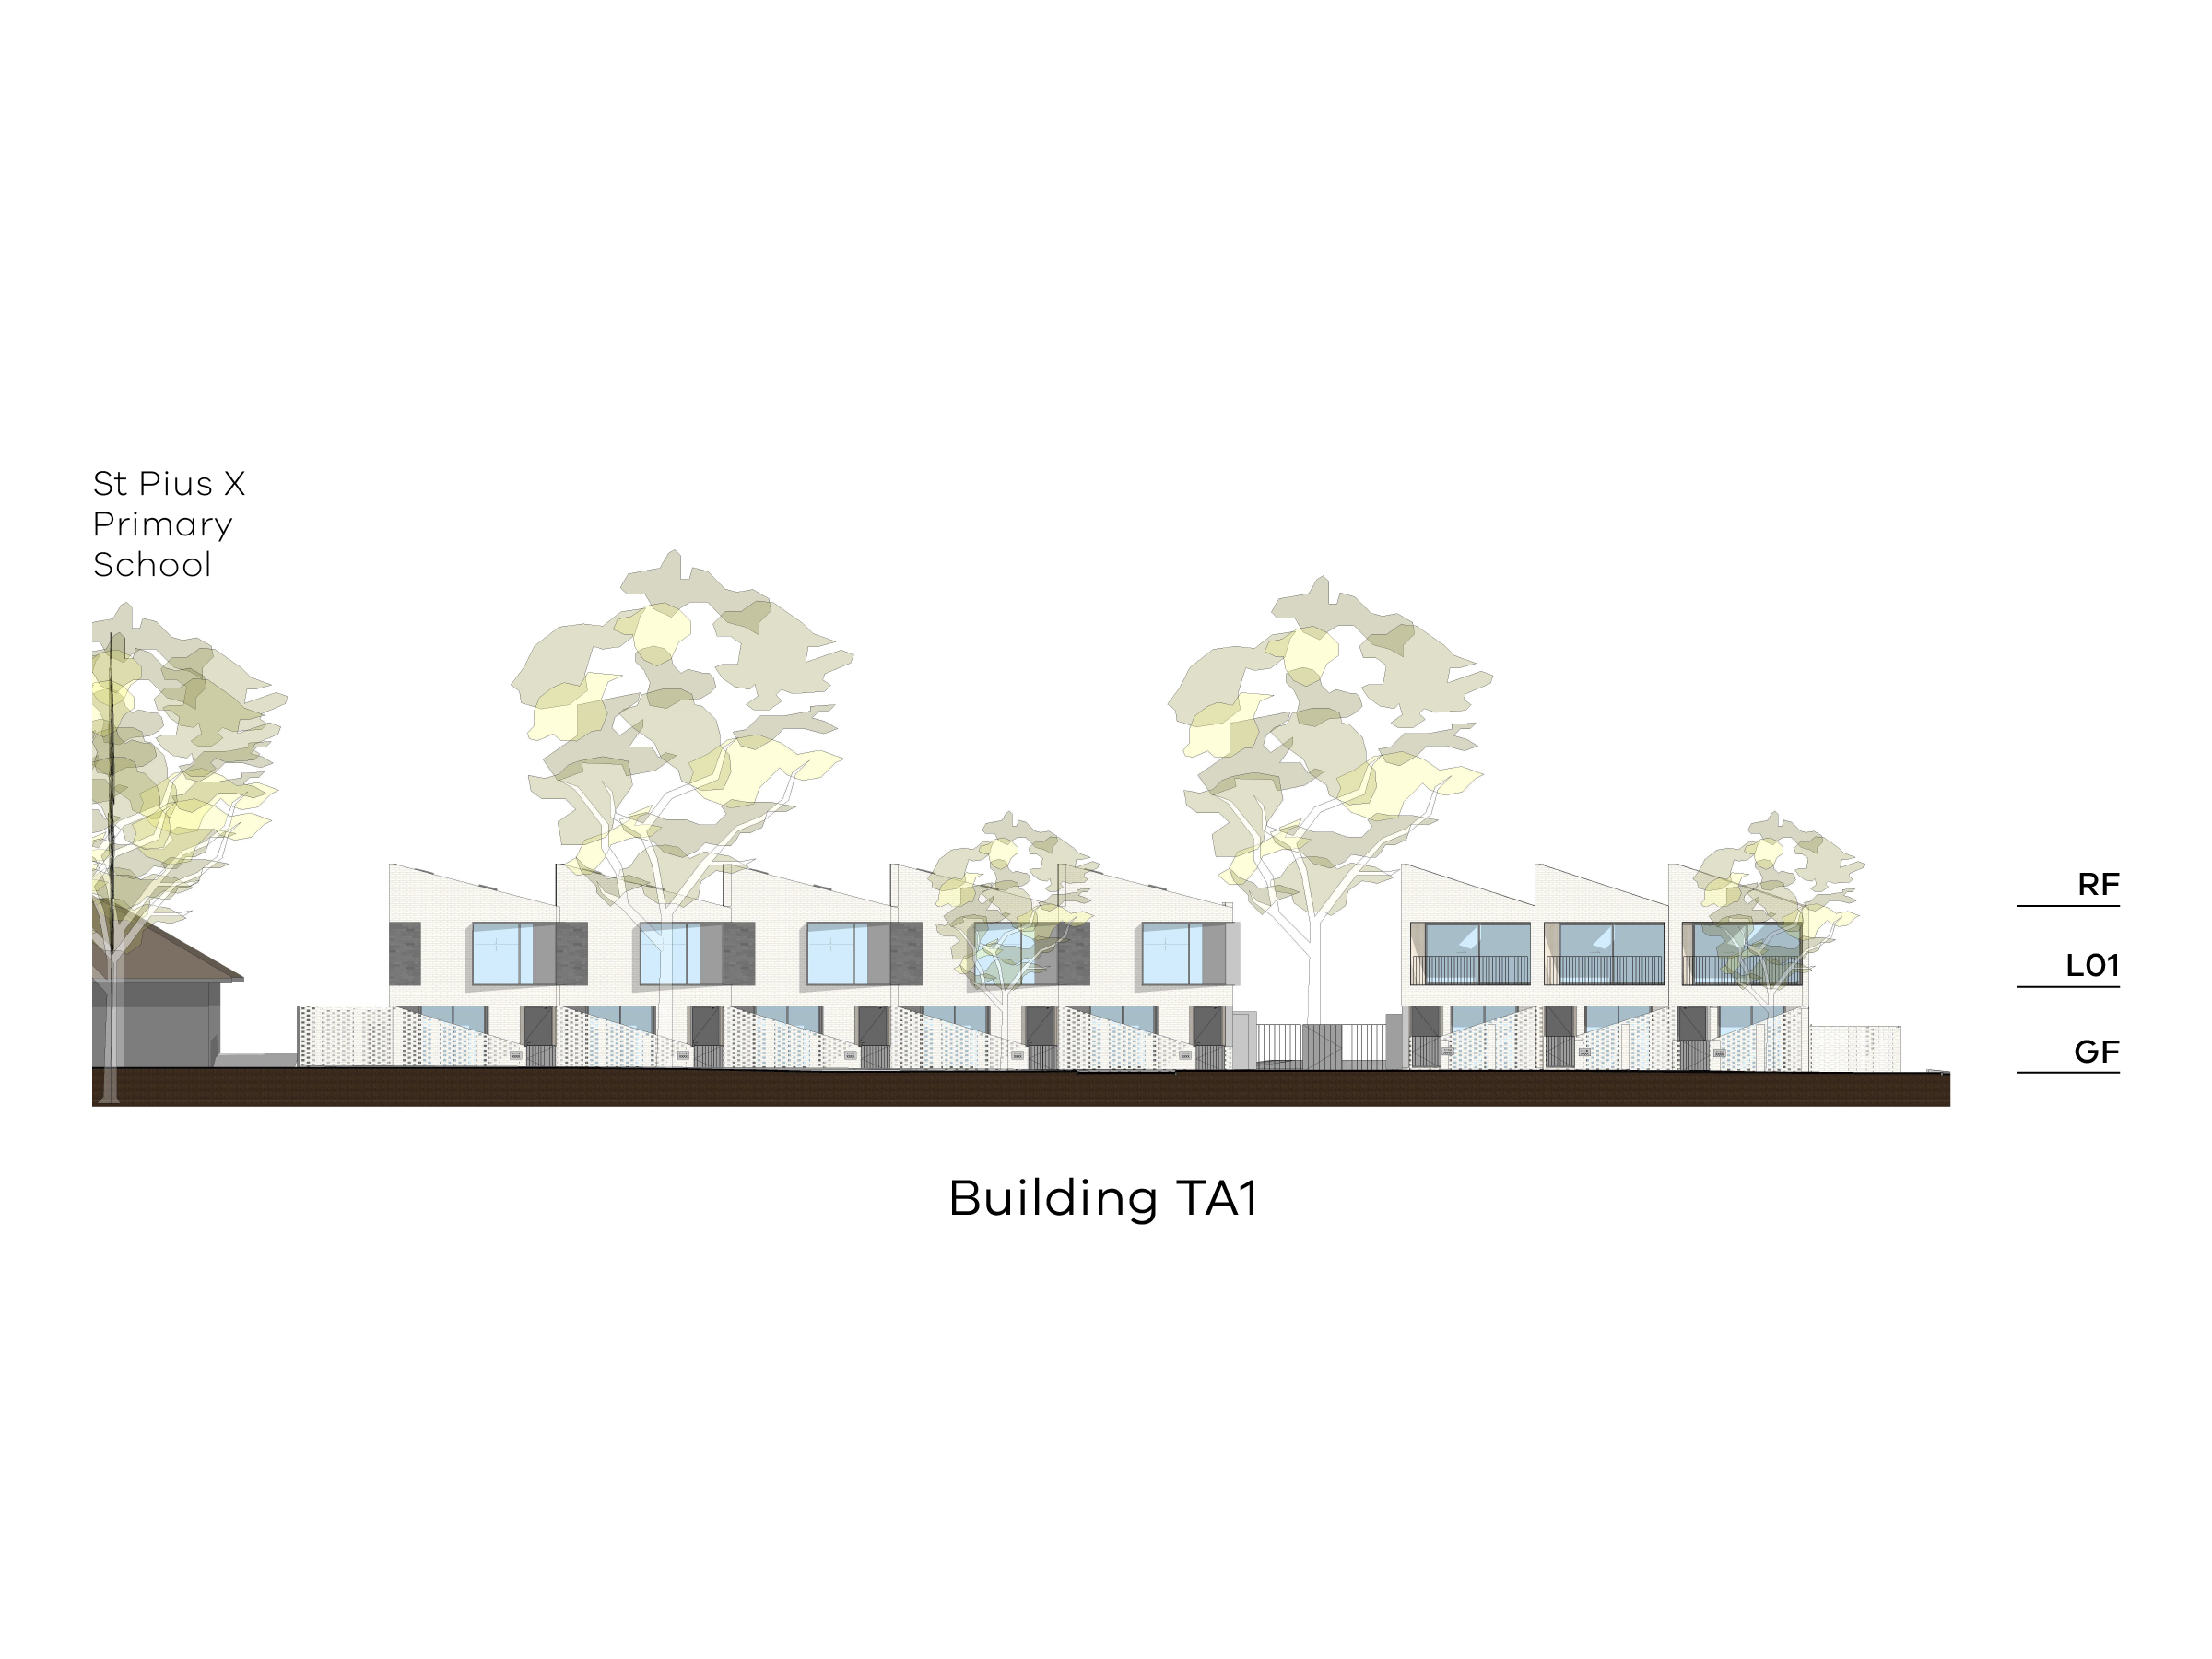 Diagram showing the height of building TA1 as seen from Altona Street. Building TA1 has a ground floor, a level 1 and a sloped roof.